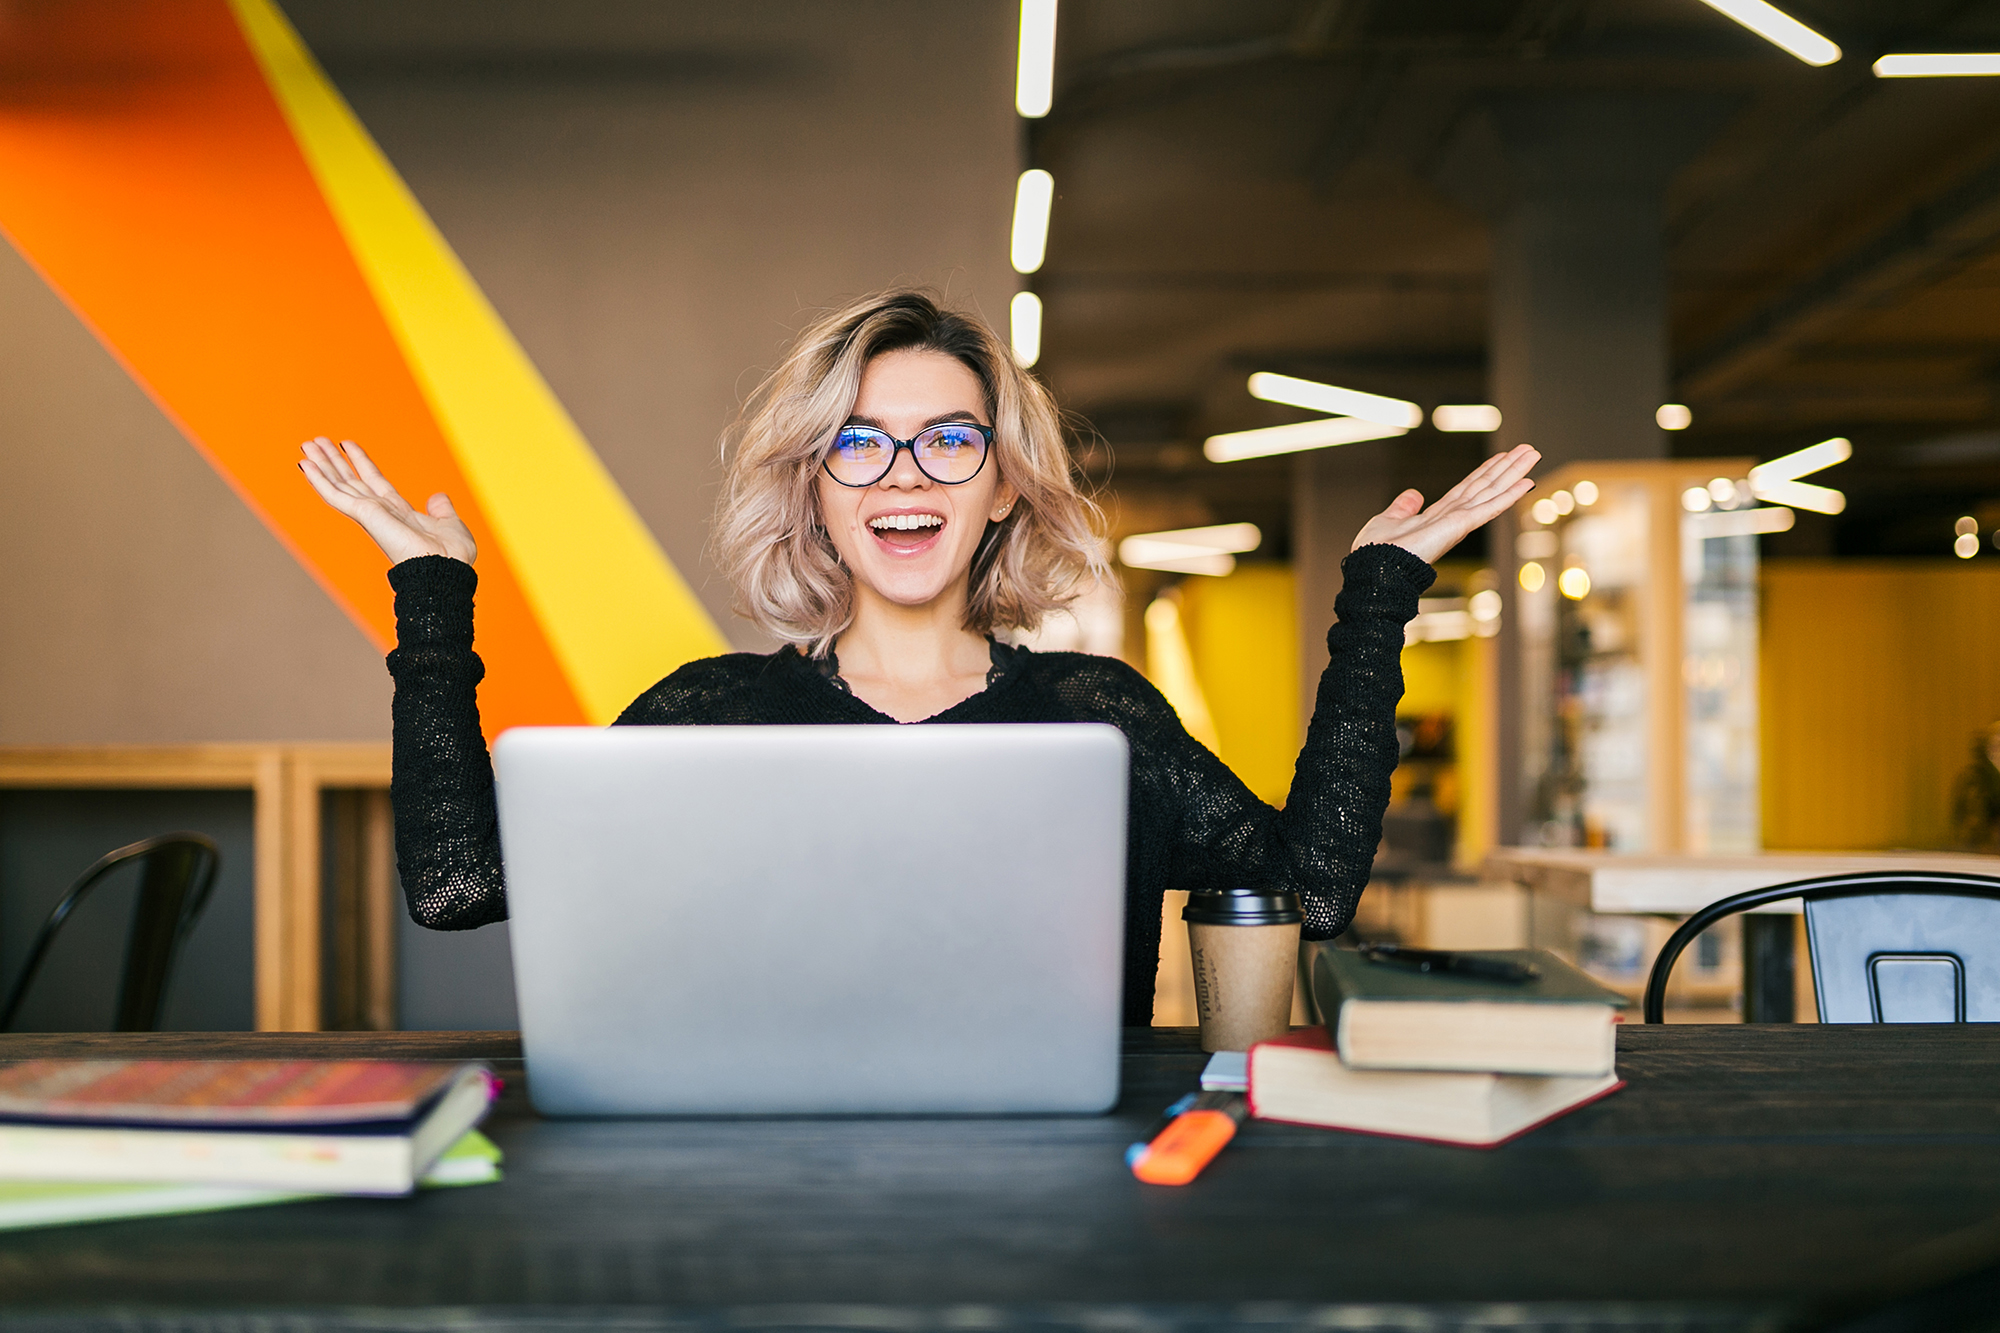 How to make the most of blended learning at university in 2020